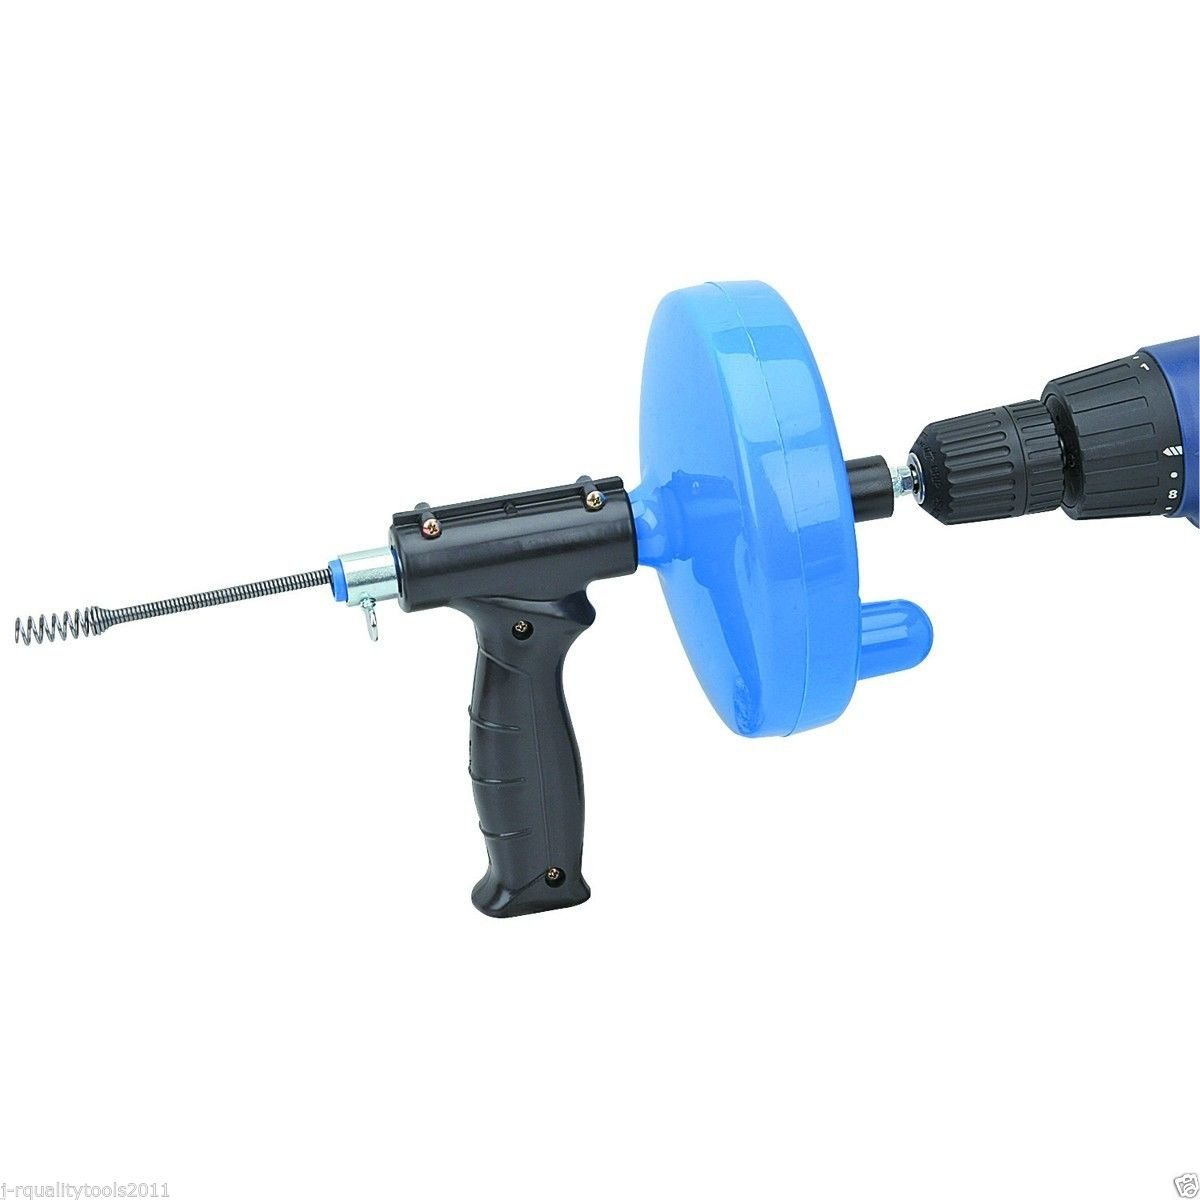 Hand Crank Or Drill Operated Powered Plumbing Drain Cleaner Snake Cable Tool by Vector tools